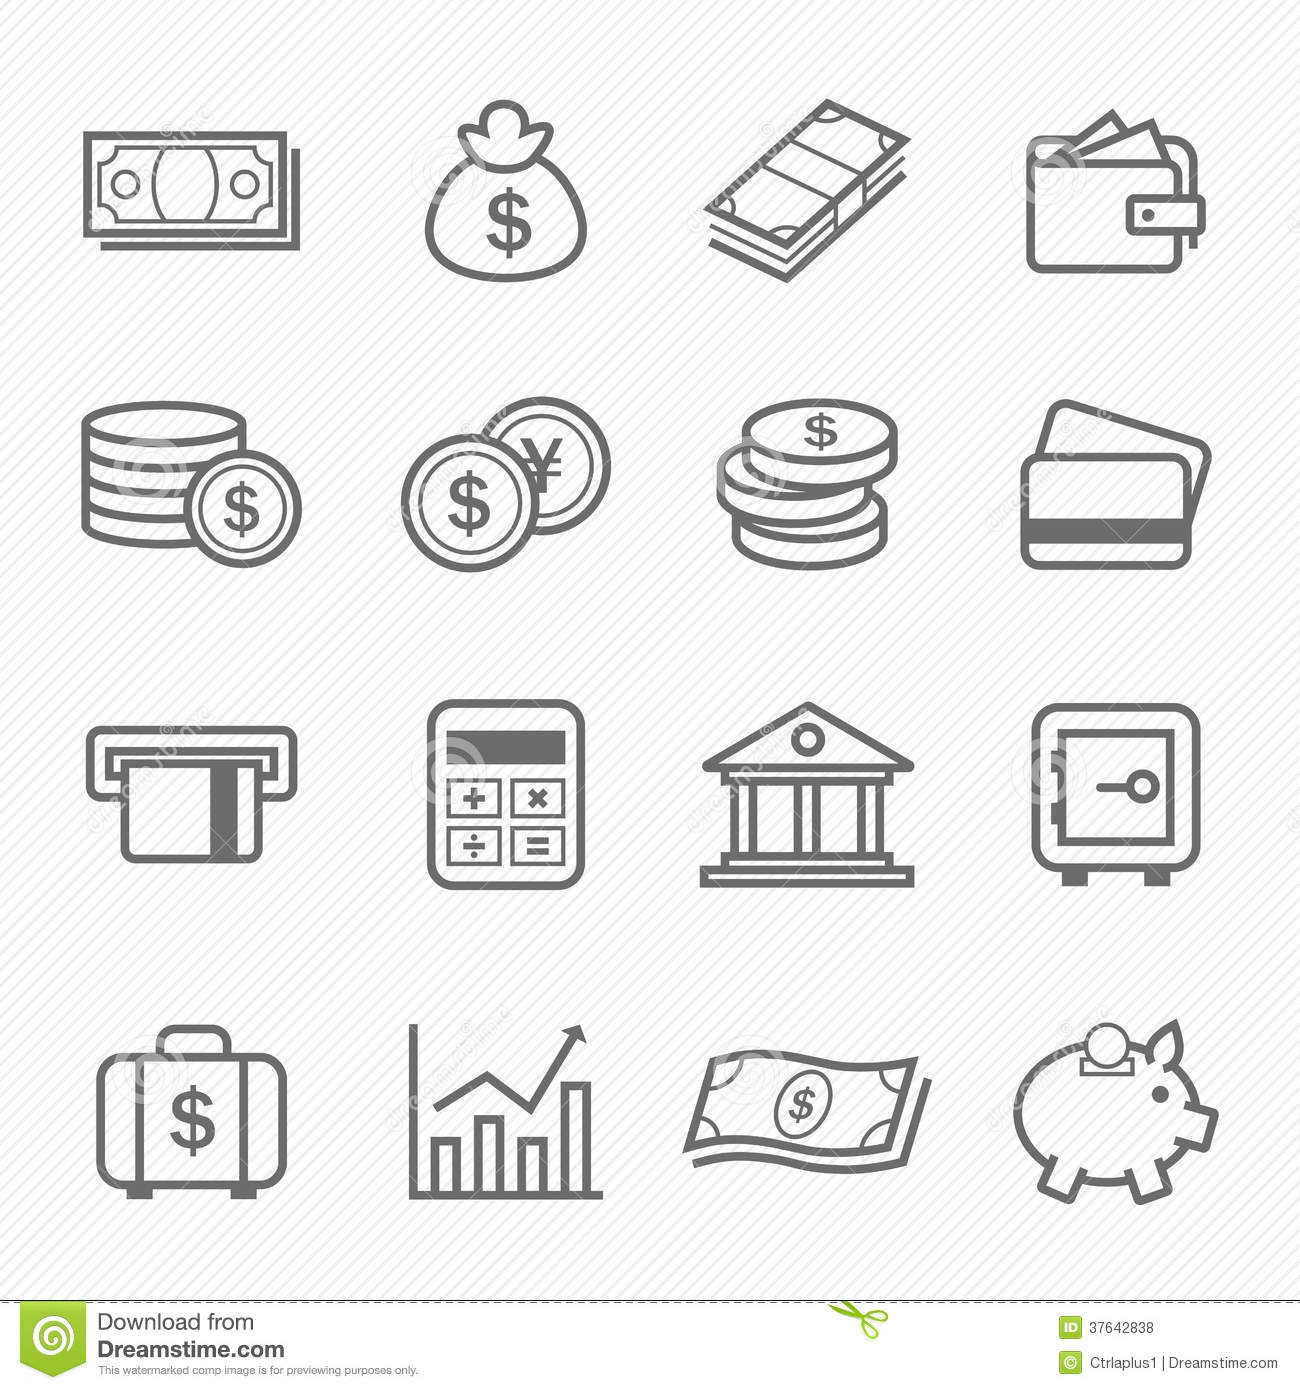 Stock Illustration Modern Line Law Legal Justice Icons Symbols Set Mobile Interface Isolated Vector Illustration Image43140458 furthermore Outstanding 1 200 Sf House Plans 1200 Square Feet With 2 Bedrooms Home Lrg 2 Floor Home Plan 1200sf Photos in addition Low Cost Kerala Home Design 1379 Sq F furthermore Floor Plan Generator besides Royalty Free Stock Photography Barbeque Image24930387. on 2d home plans